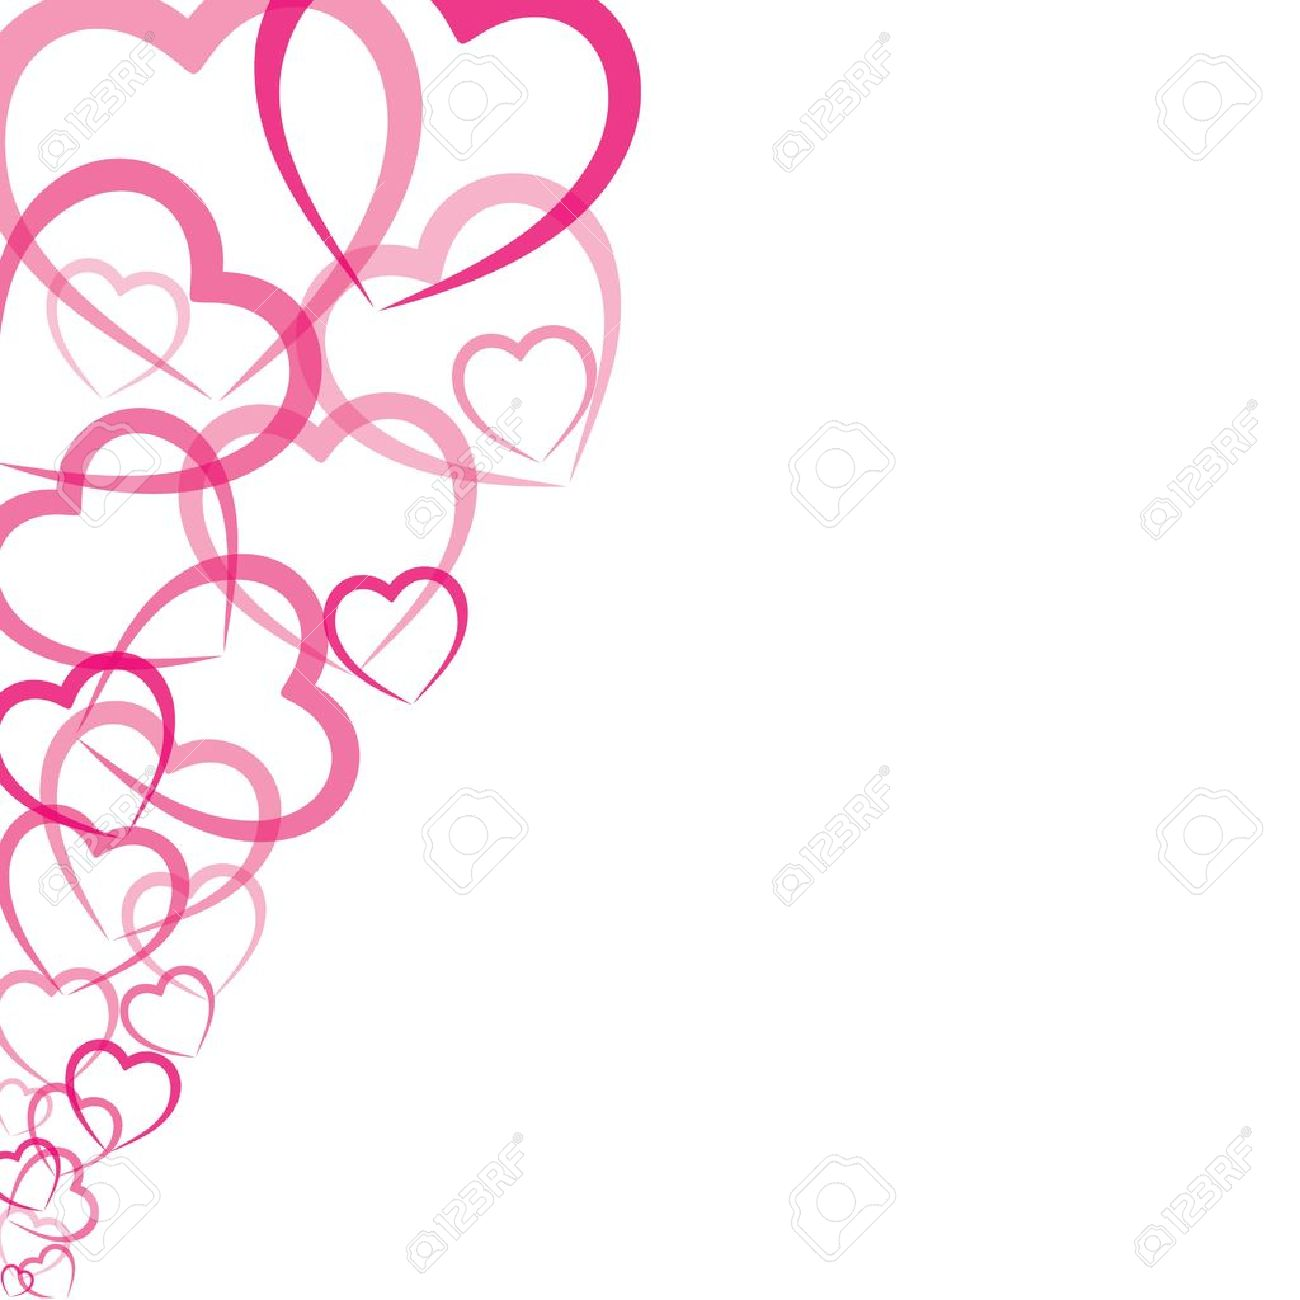 pink heart greeting card stock vector Stock Vector - 17763199